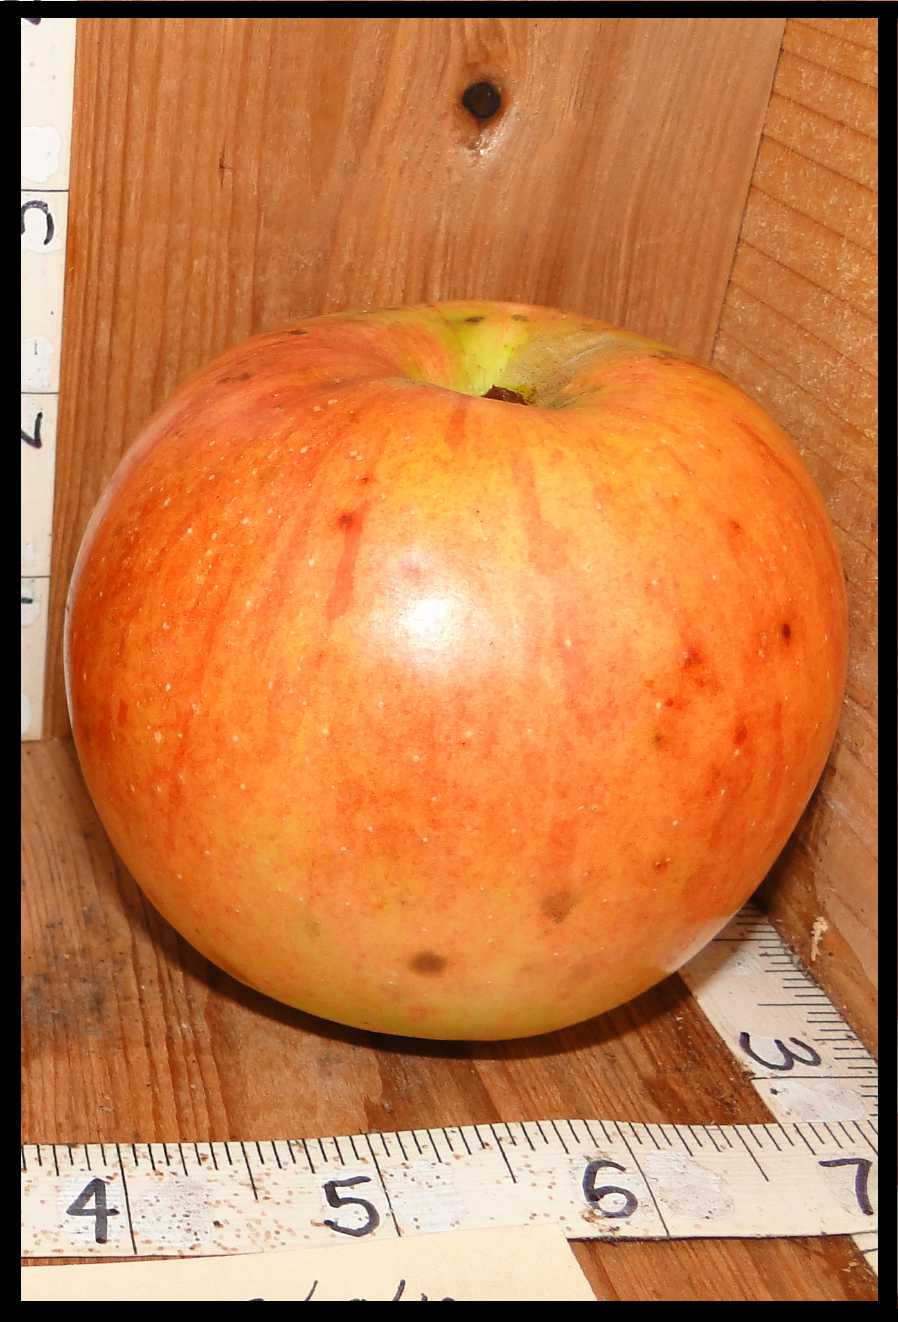 yellow apple covered in a light red blush with darker red stripes